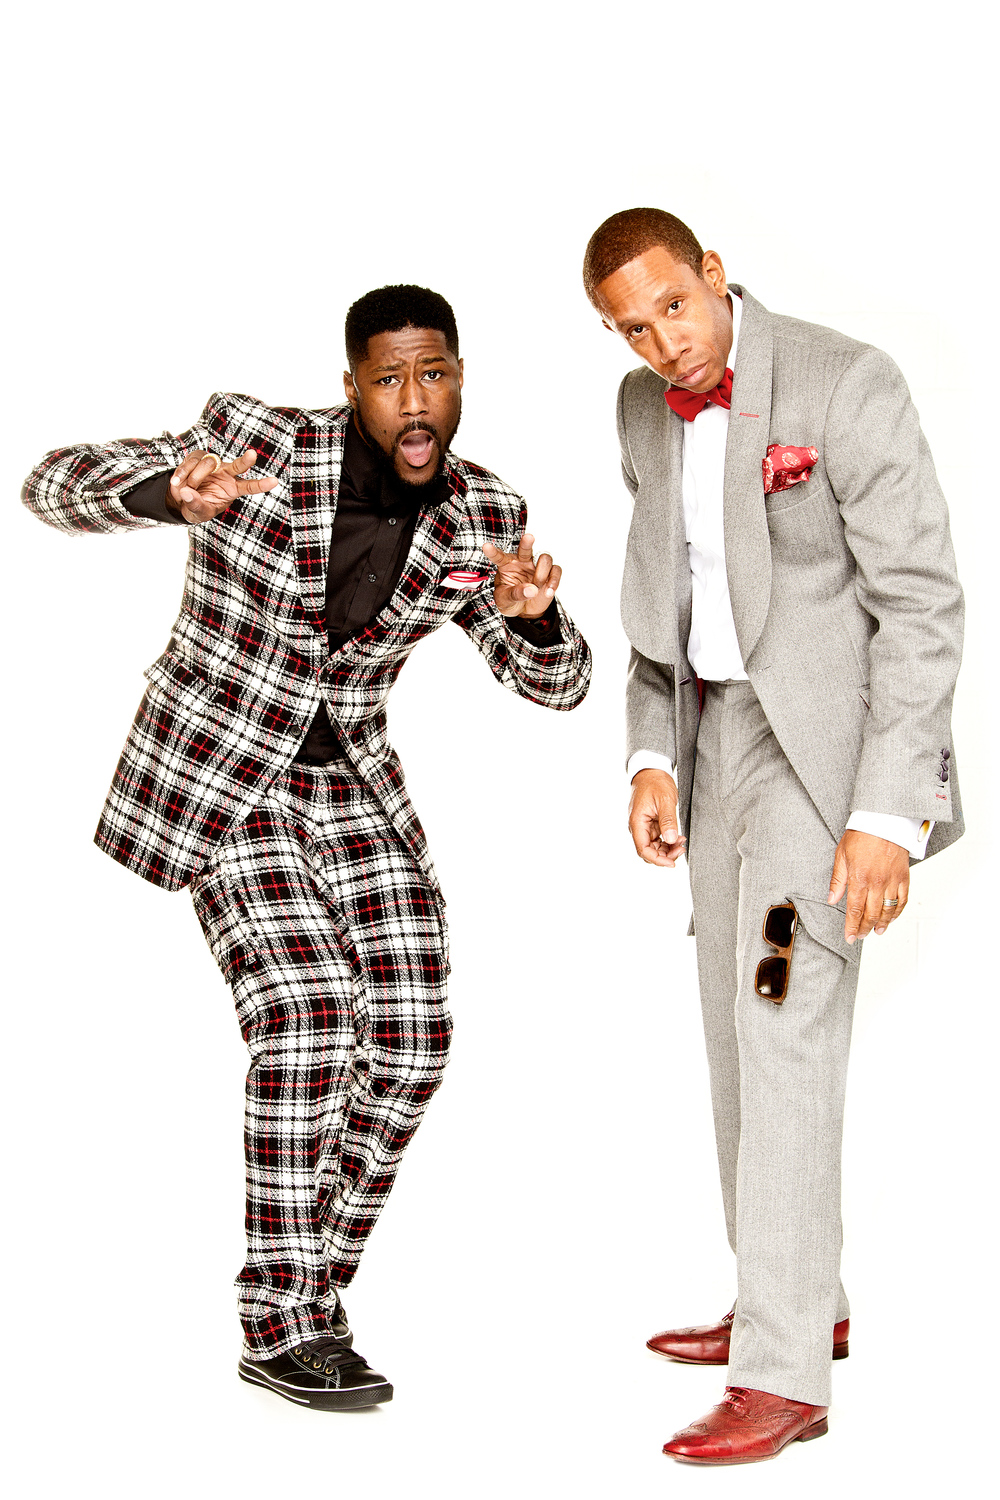 William Malcolm designs a collection for NFL Networks Nate Burleson. To learn more visit:www.BLineSuiting.com